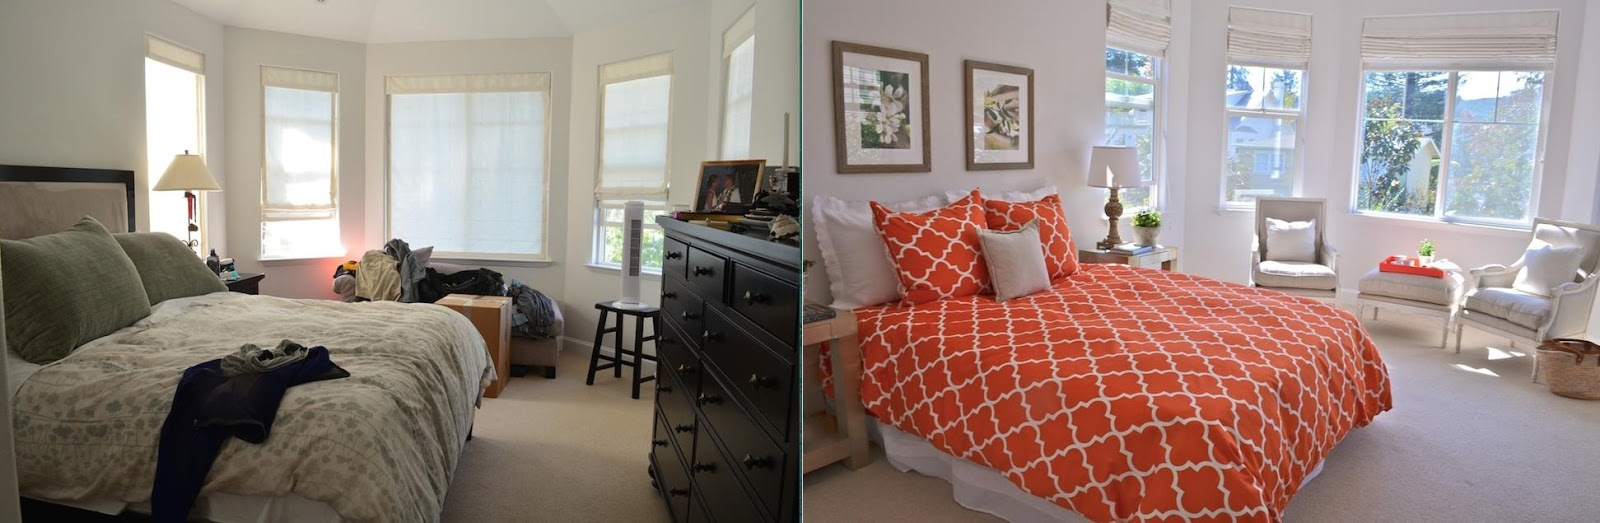 Bright accessories and light furniture make this room feel fresh and open.